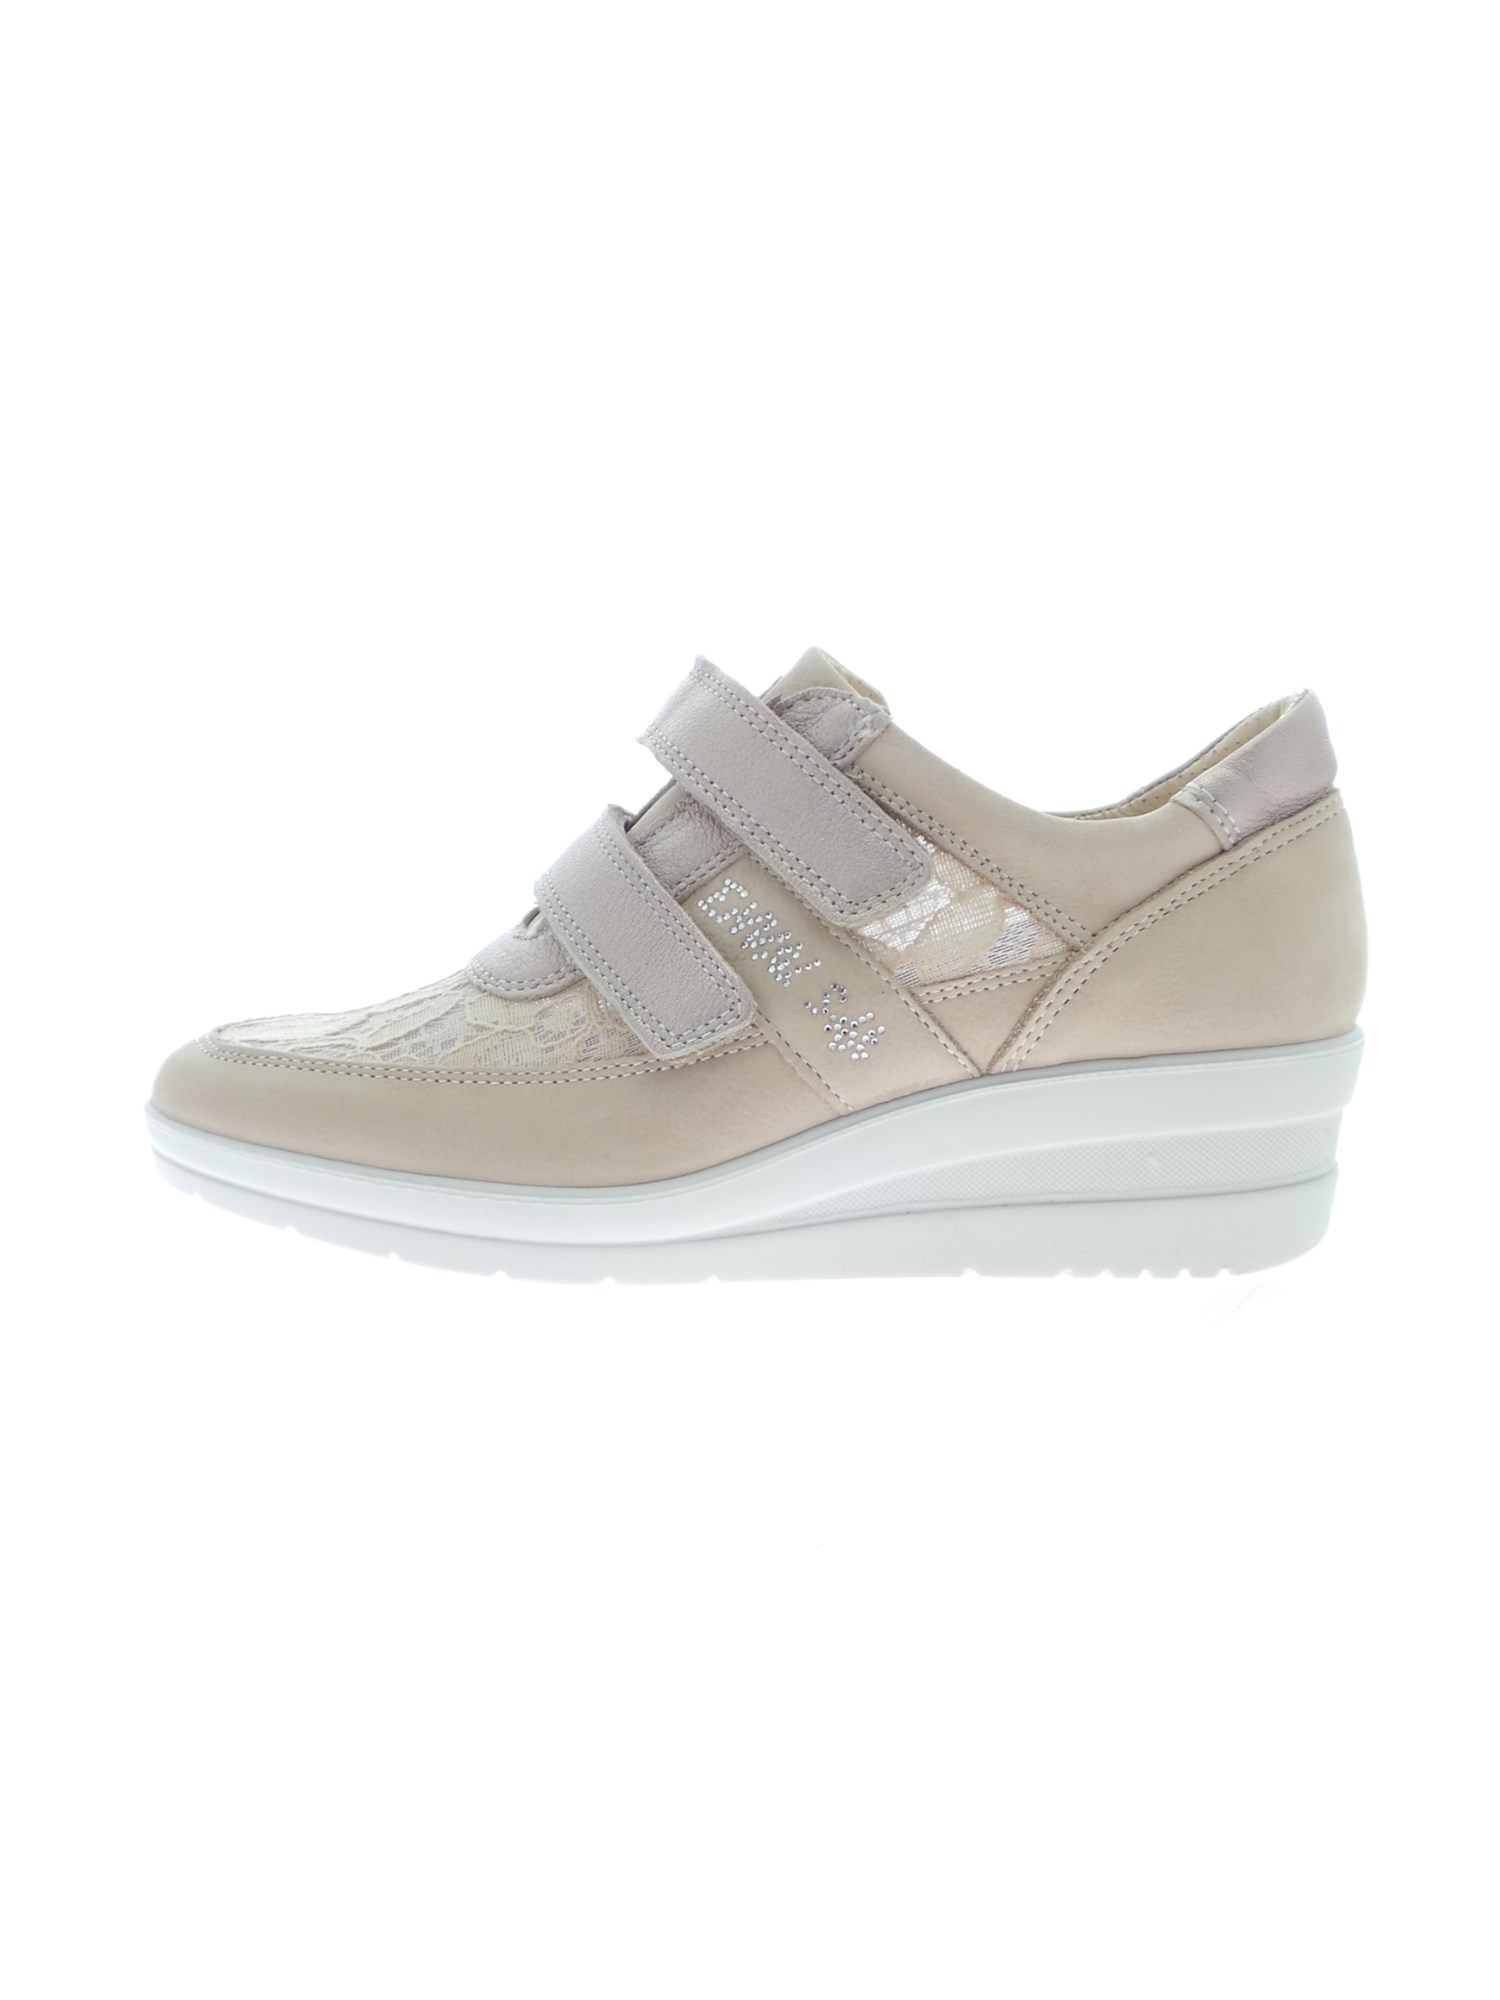 Enval 7271433 Beige Shoes Woman